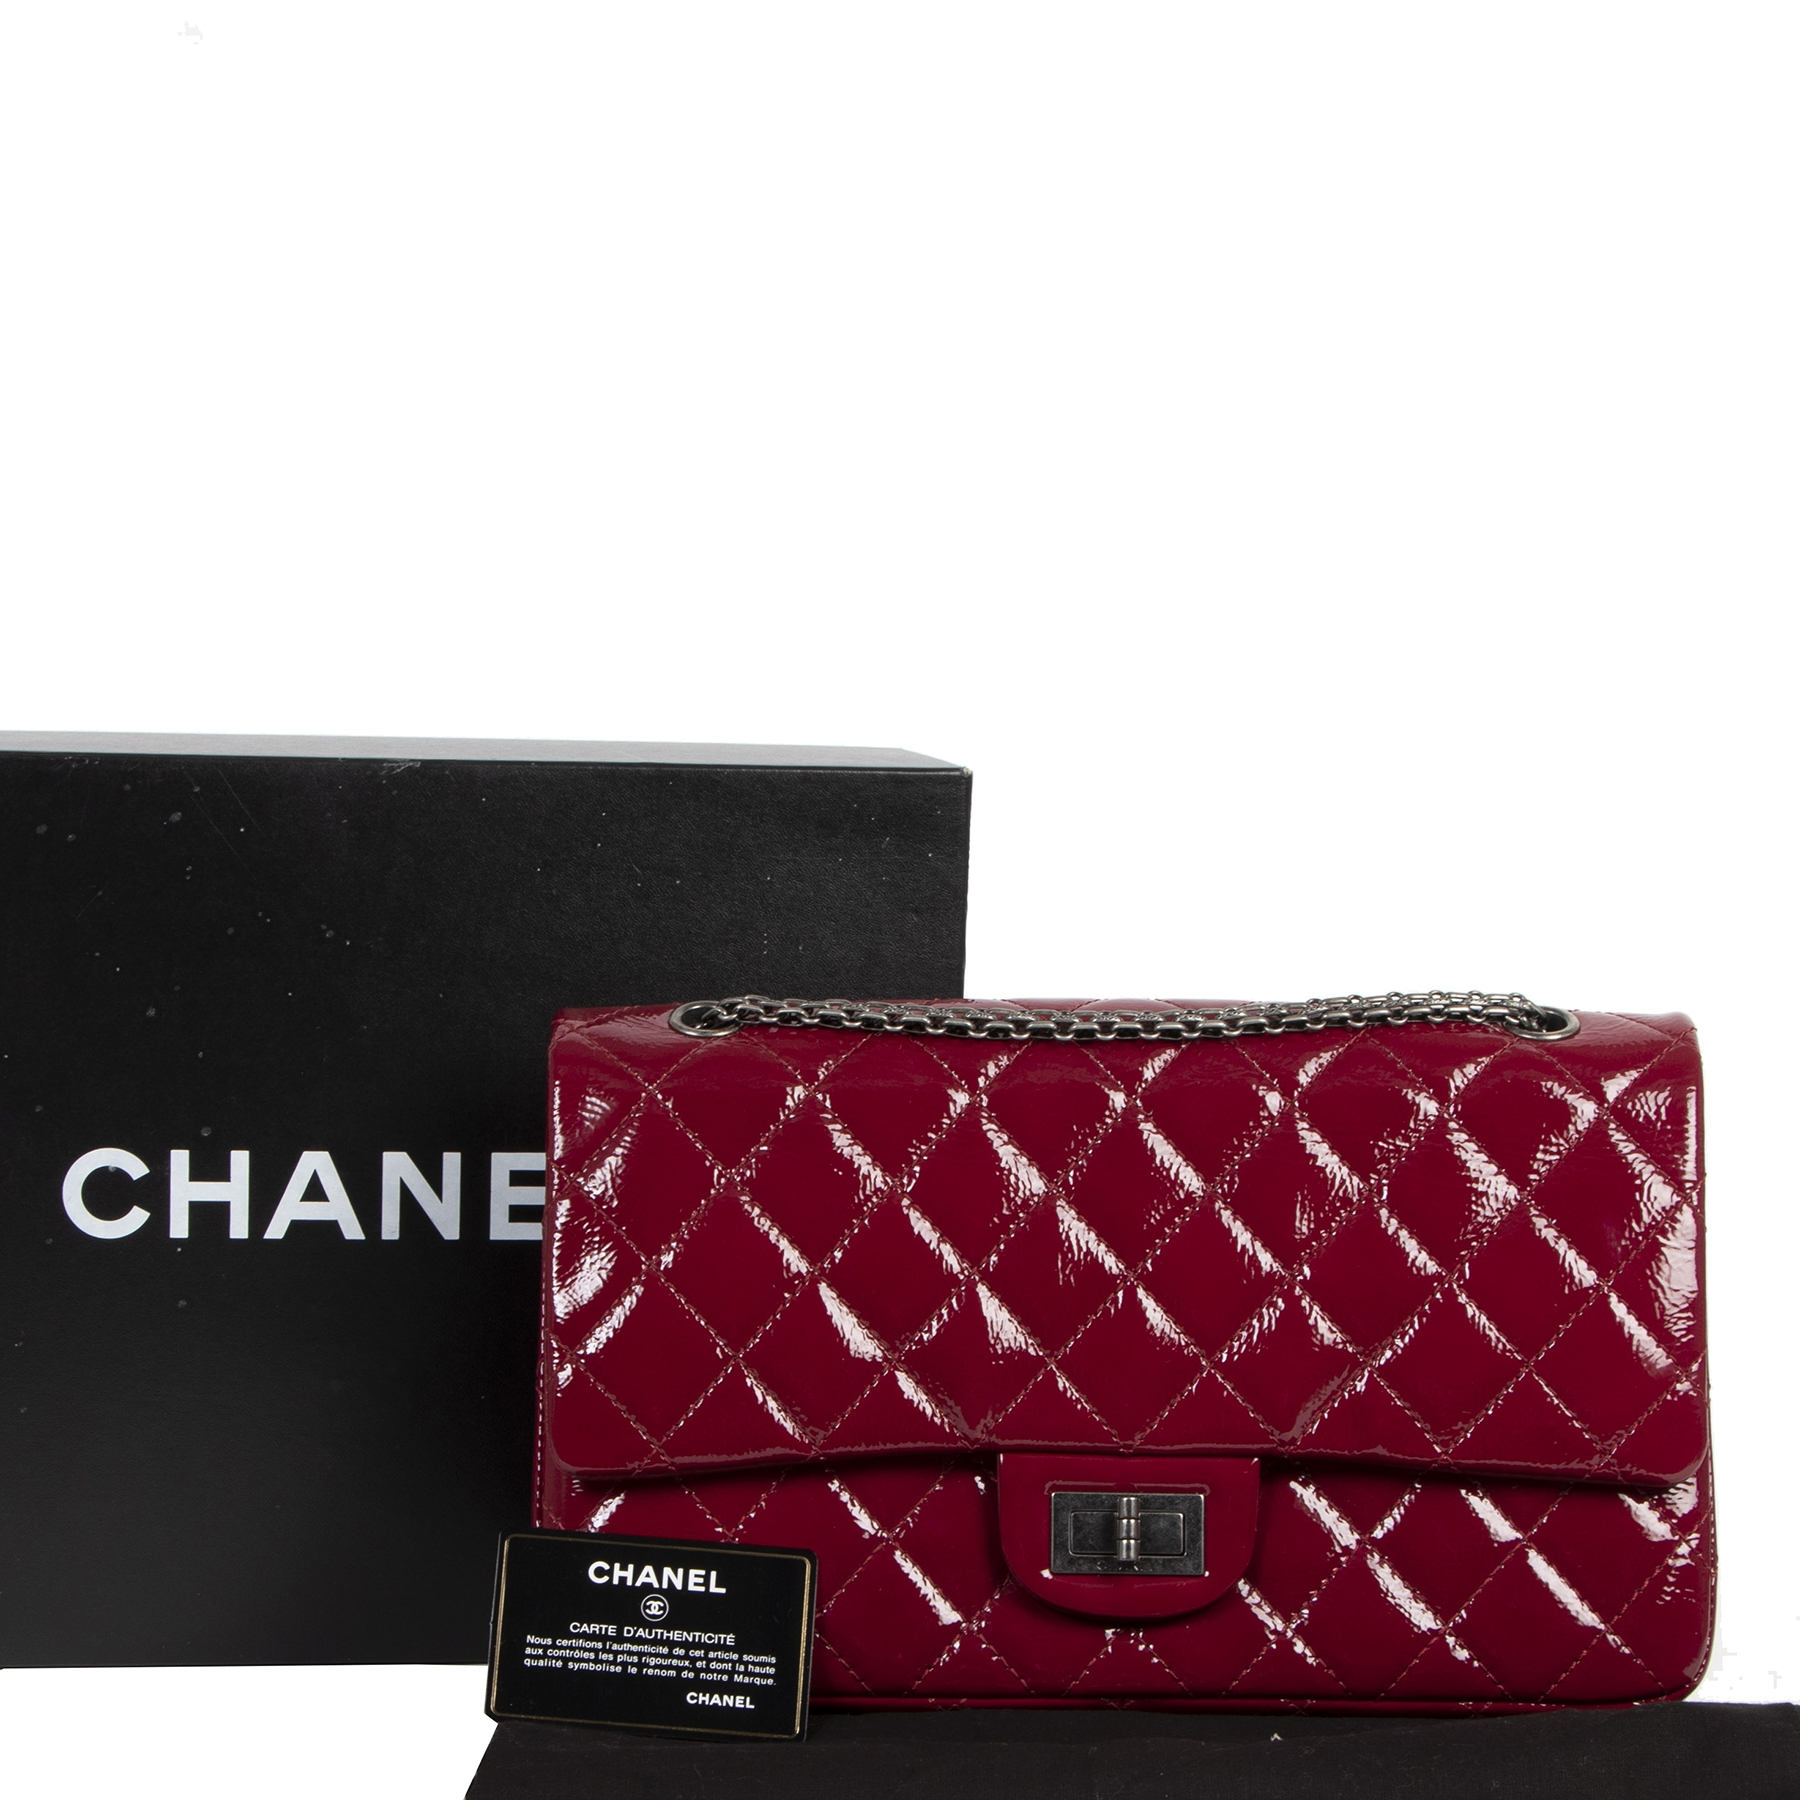 Chanel 2.55 Reissue Jumbo Double Flap Cranberry Patent Leather Bag